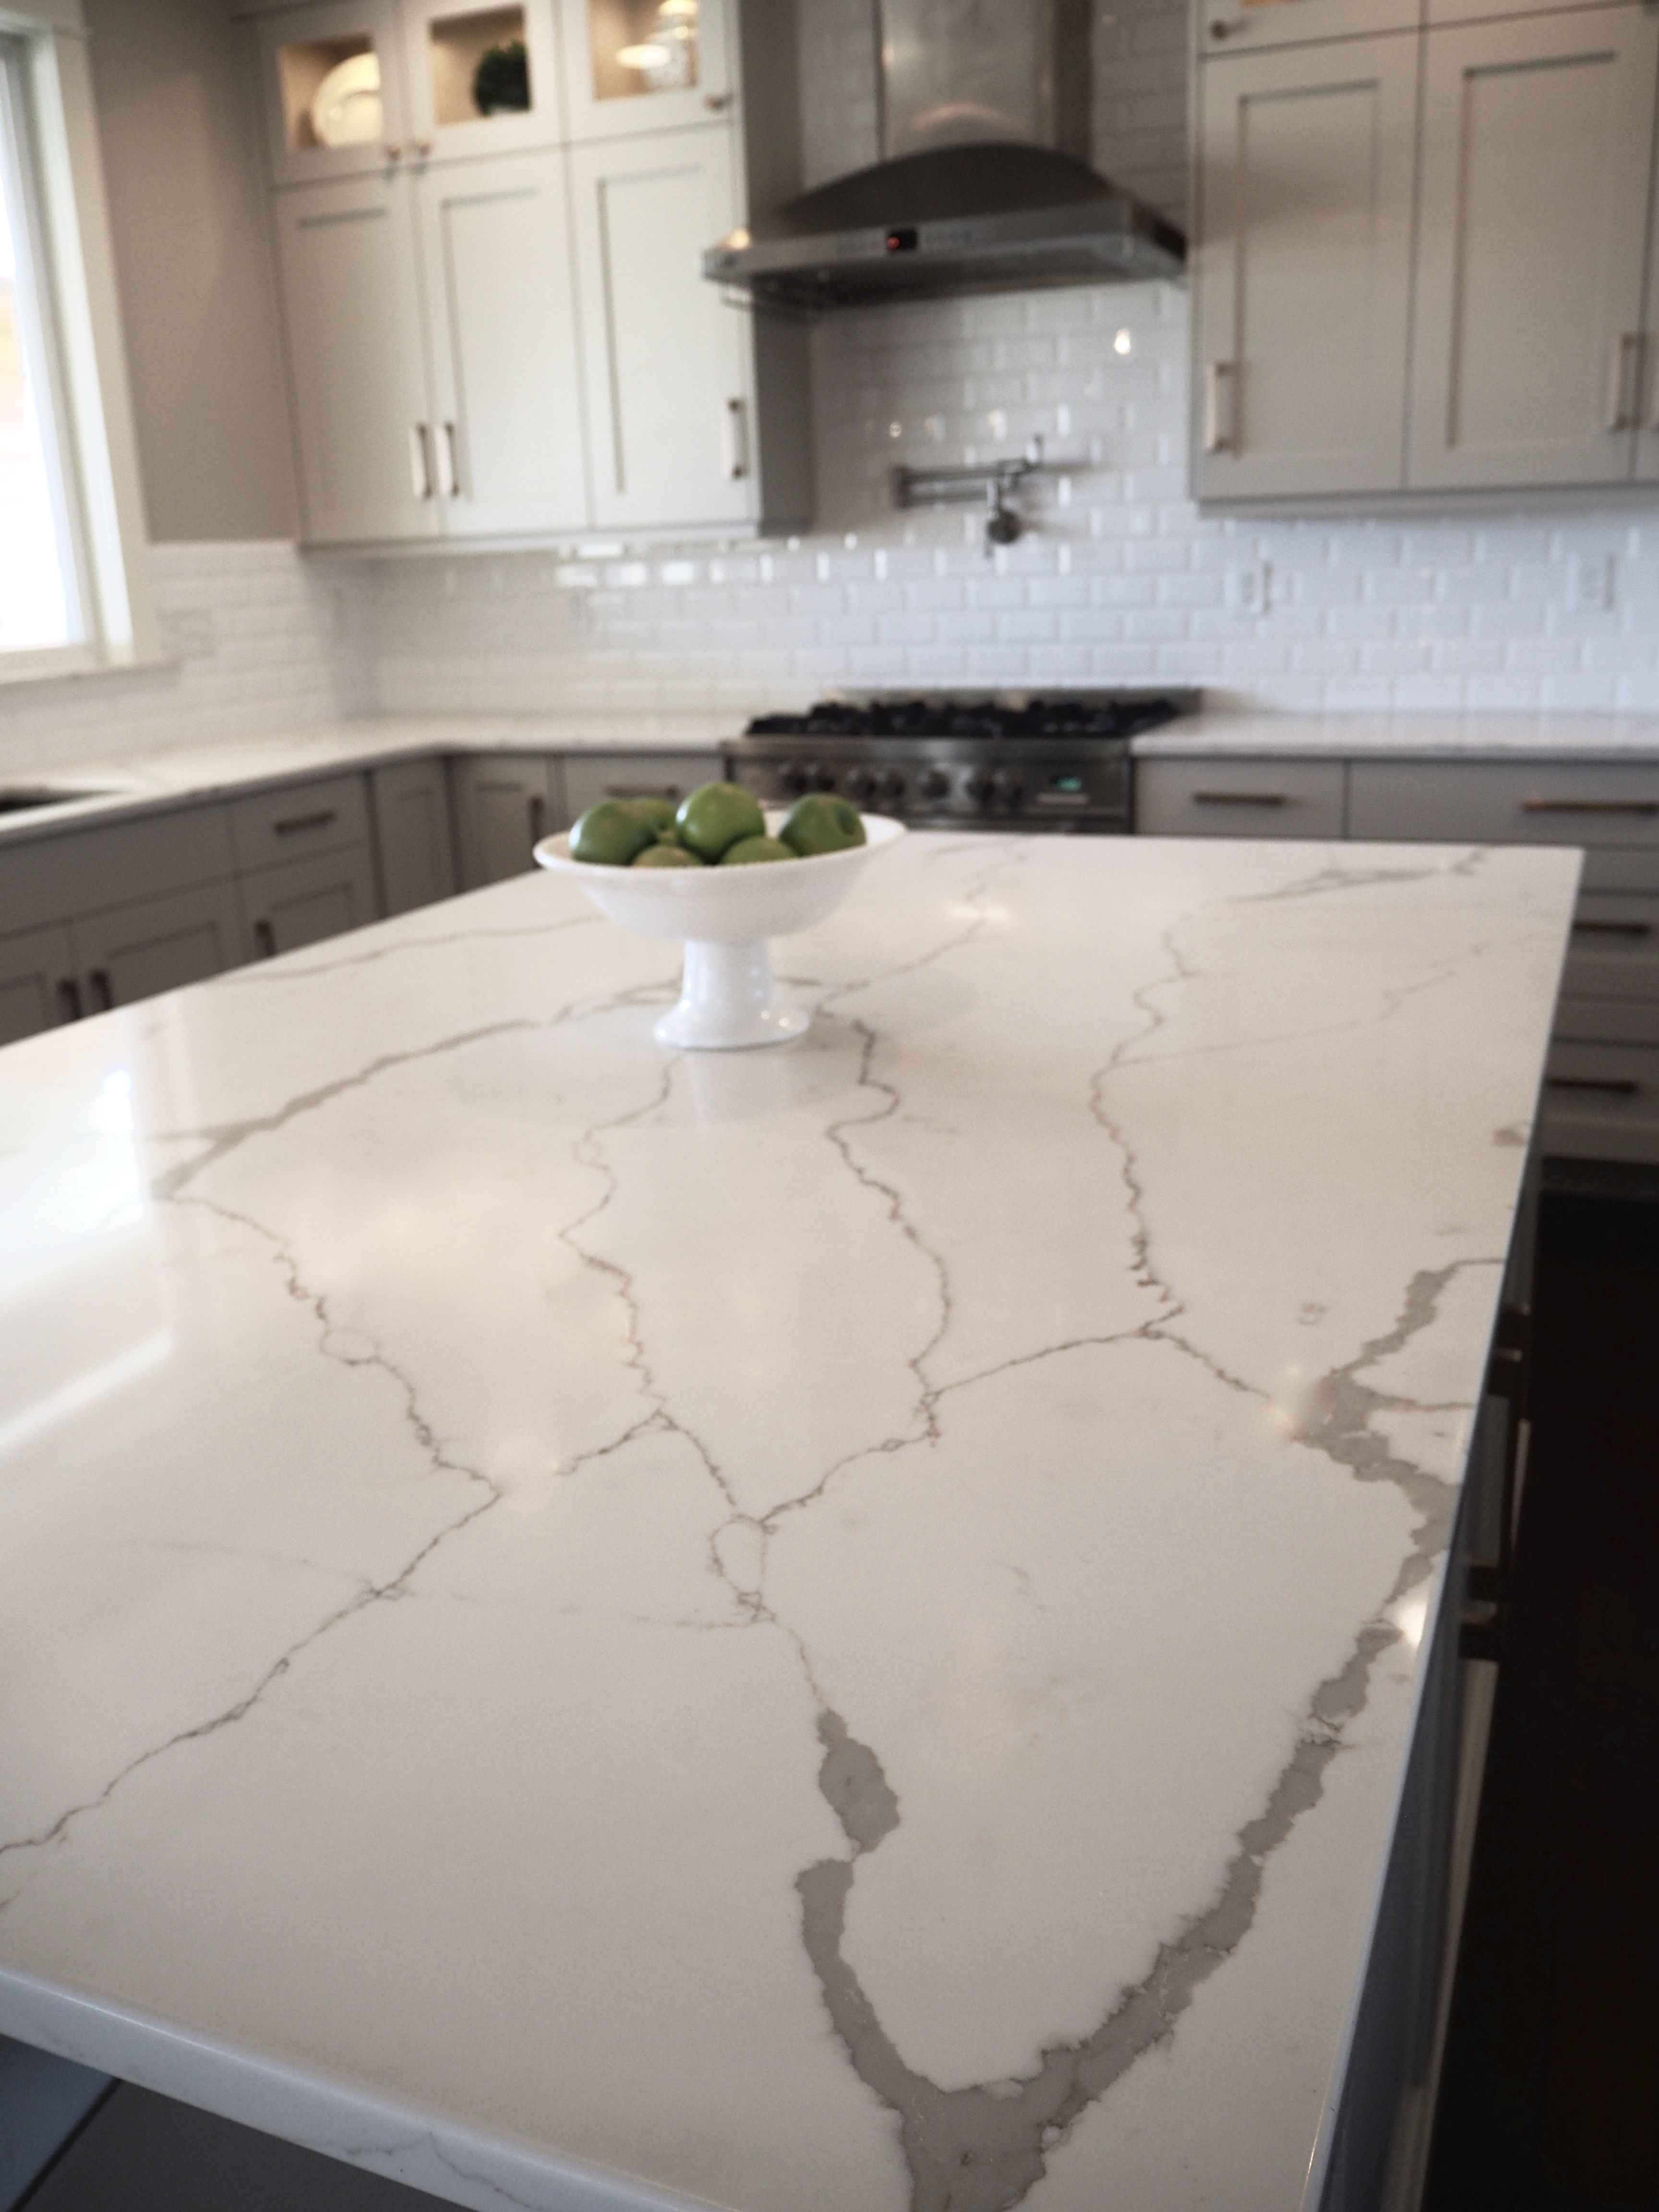 Daltile Quartz Countertops Great Marble Look Alike Quartz